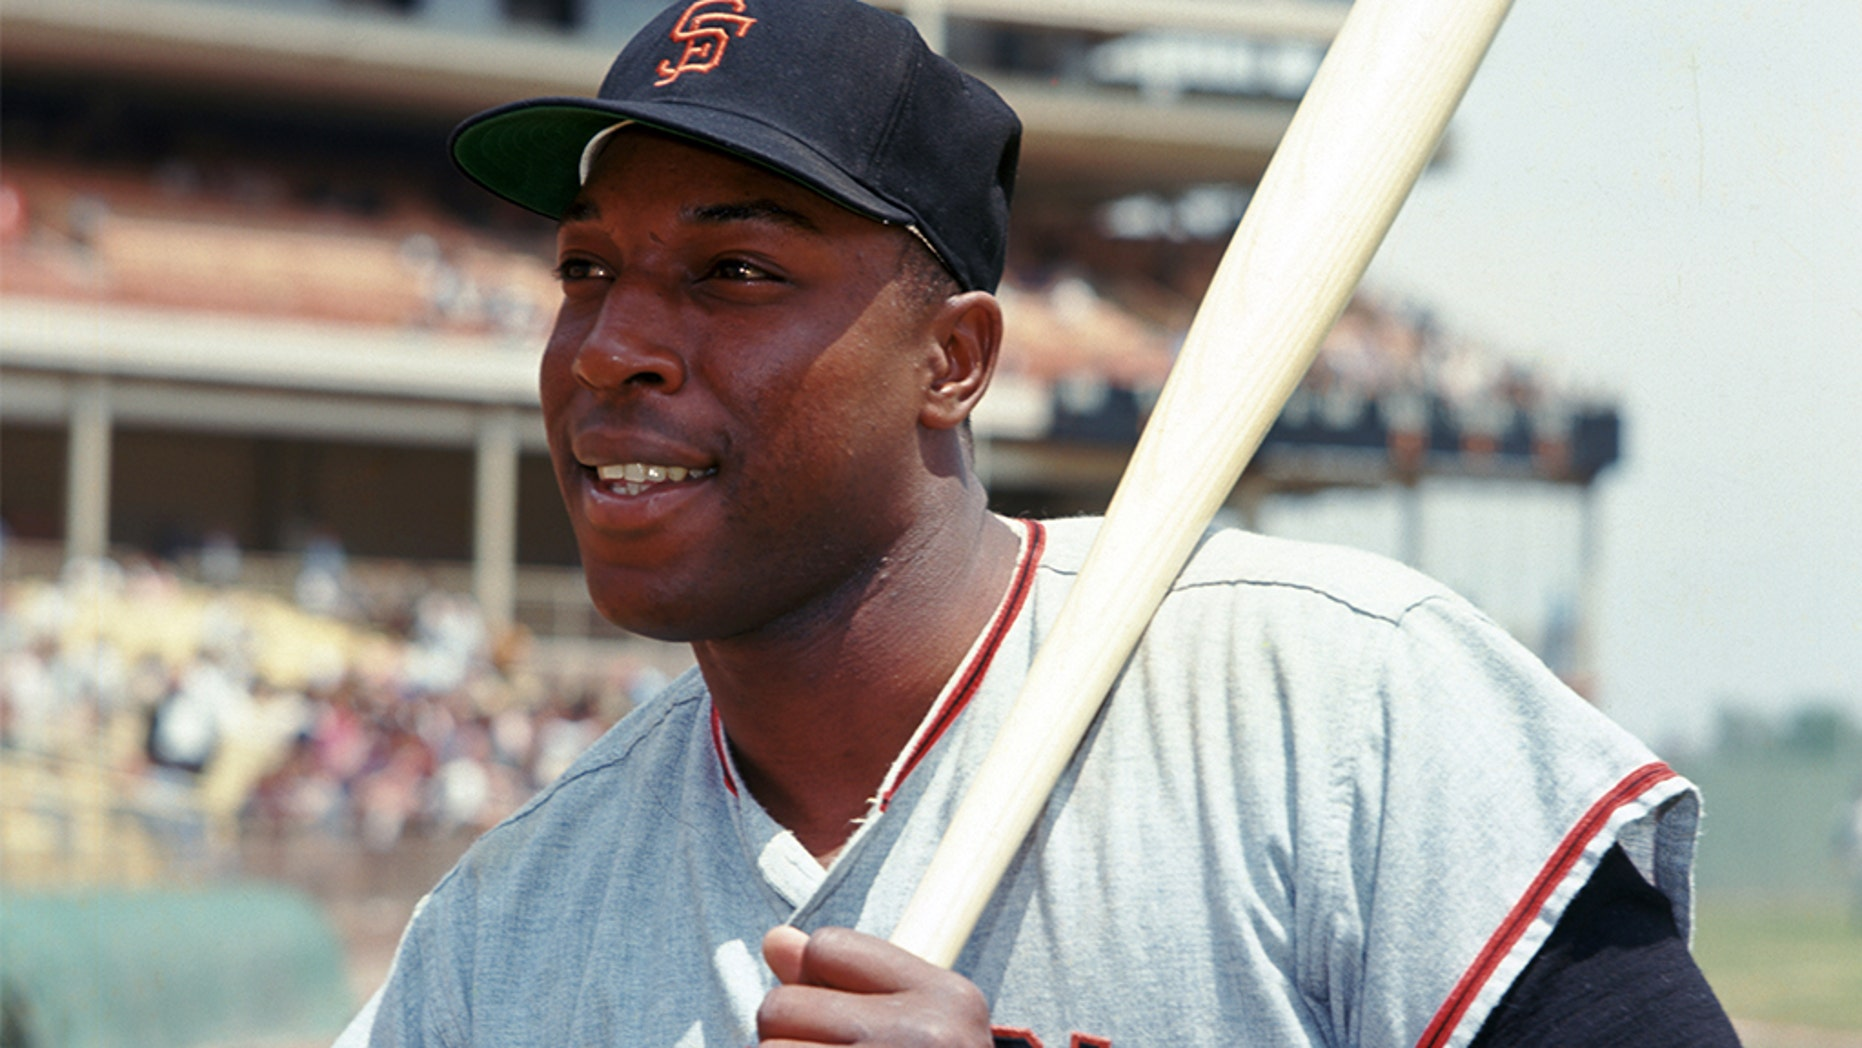 San Francisco Giants legend Willie McCovey has died